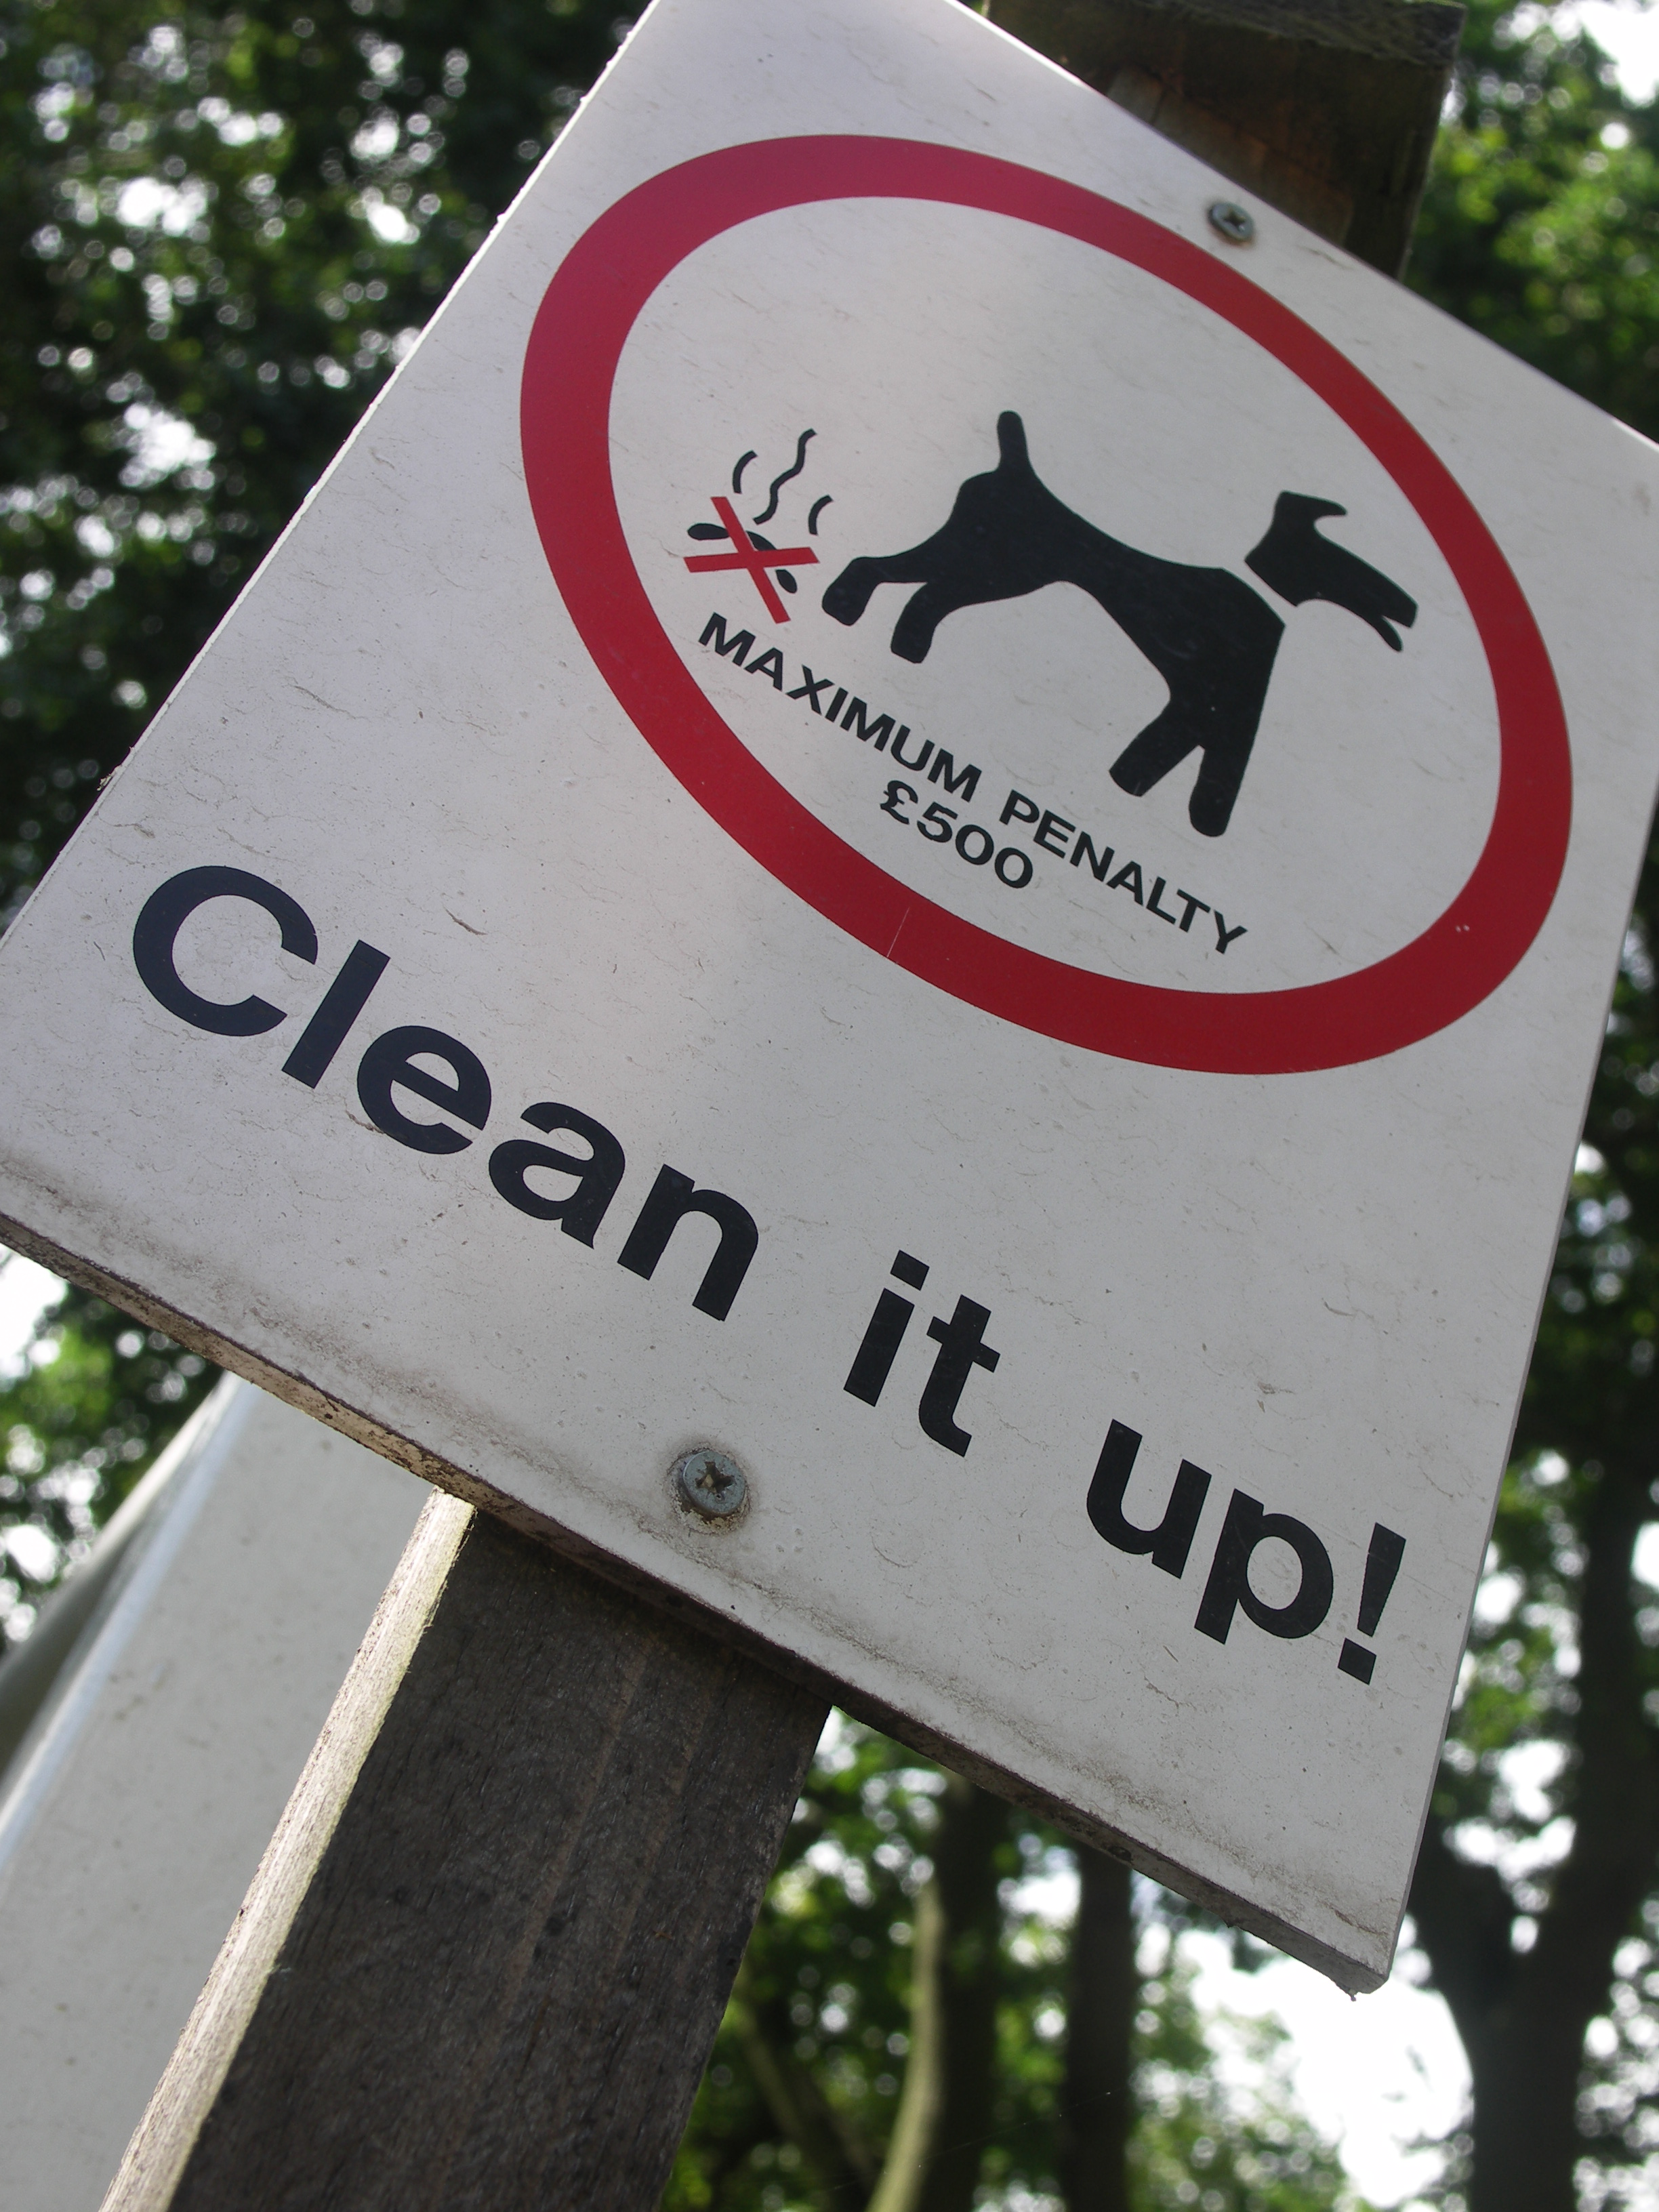 No dog fouling sign in Leek Wootton